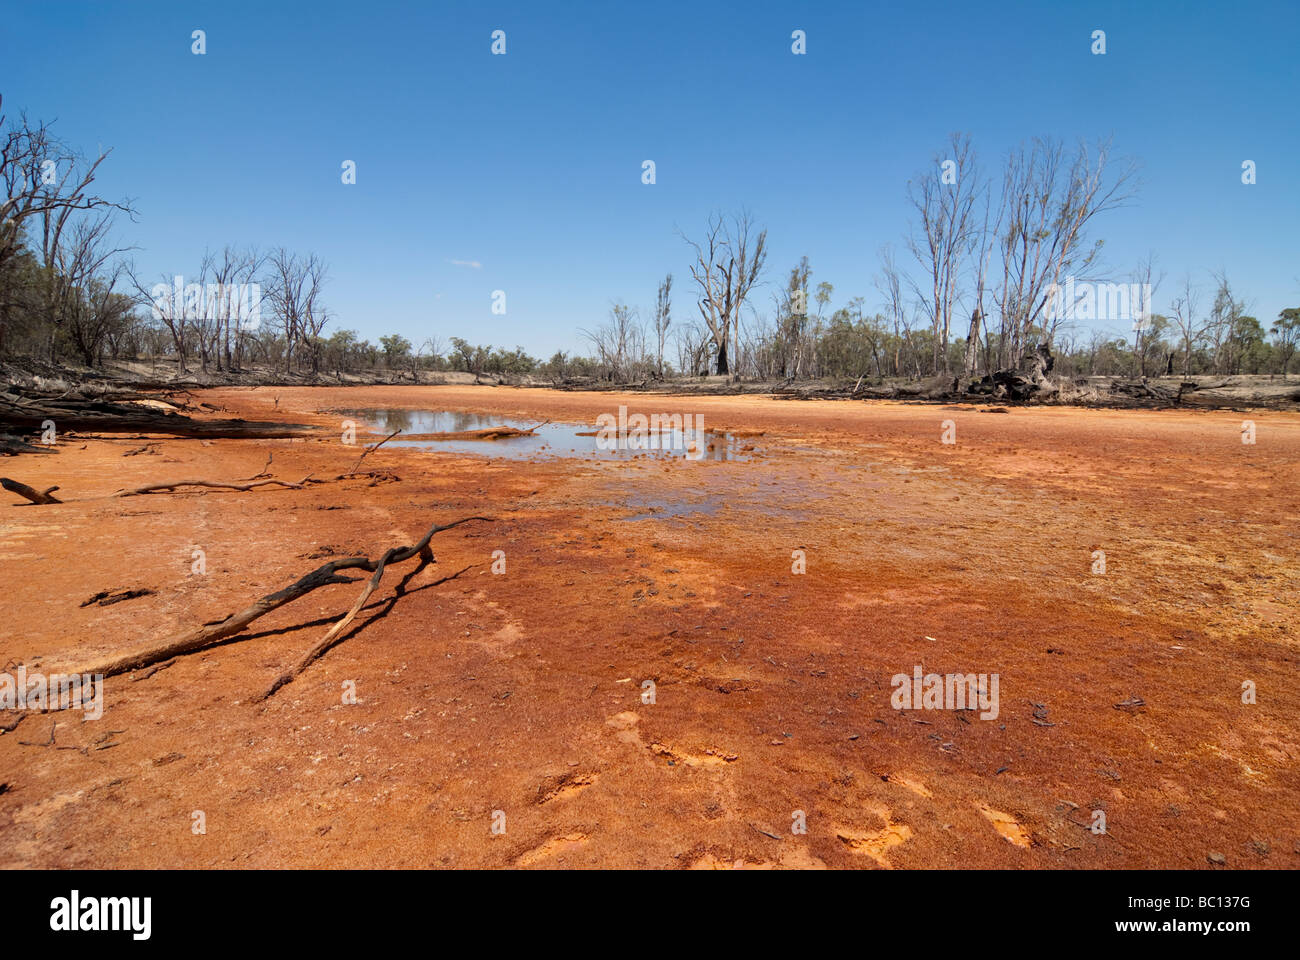 Wetland acidified by acid sulfate soils - Stock Image